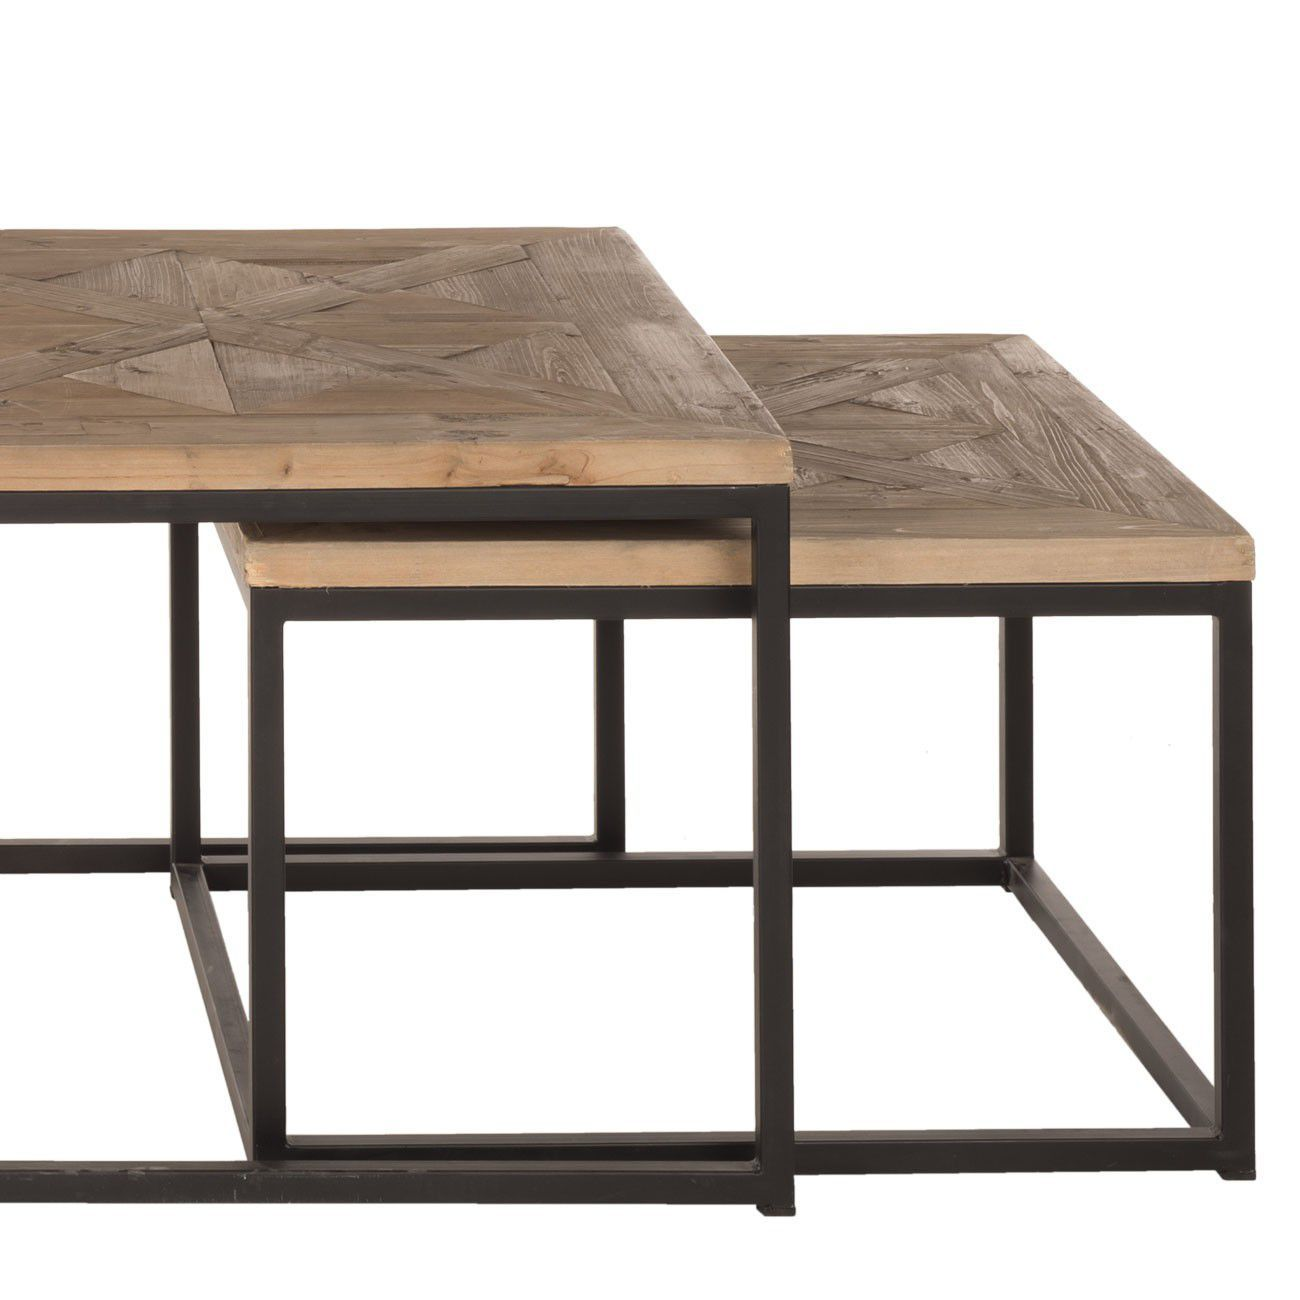 110 table basse fer bois table basse carree fer et bois table basse salon bois et fer table. Black Bedroom Furniture Sets. Home Design Ideas